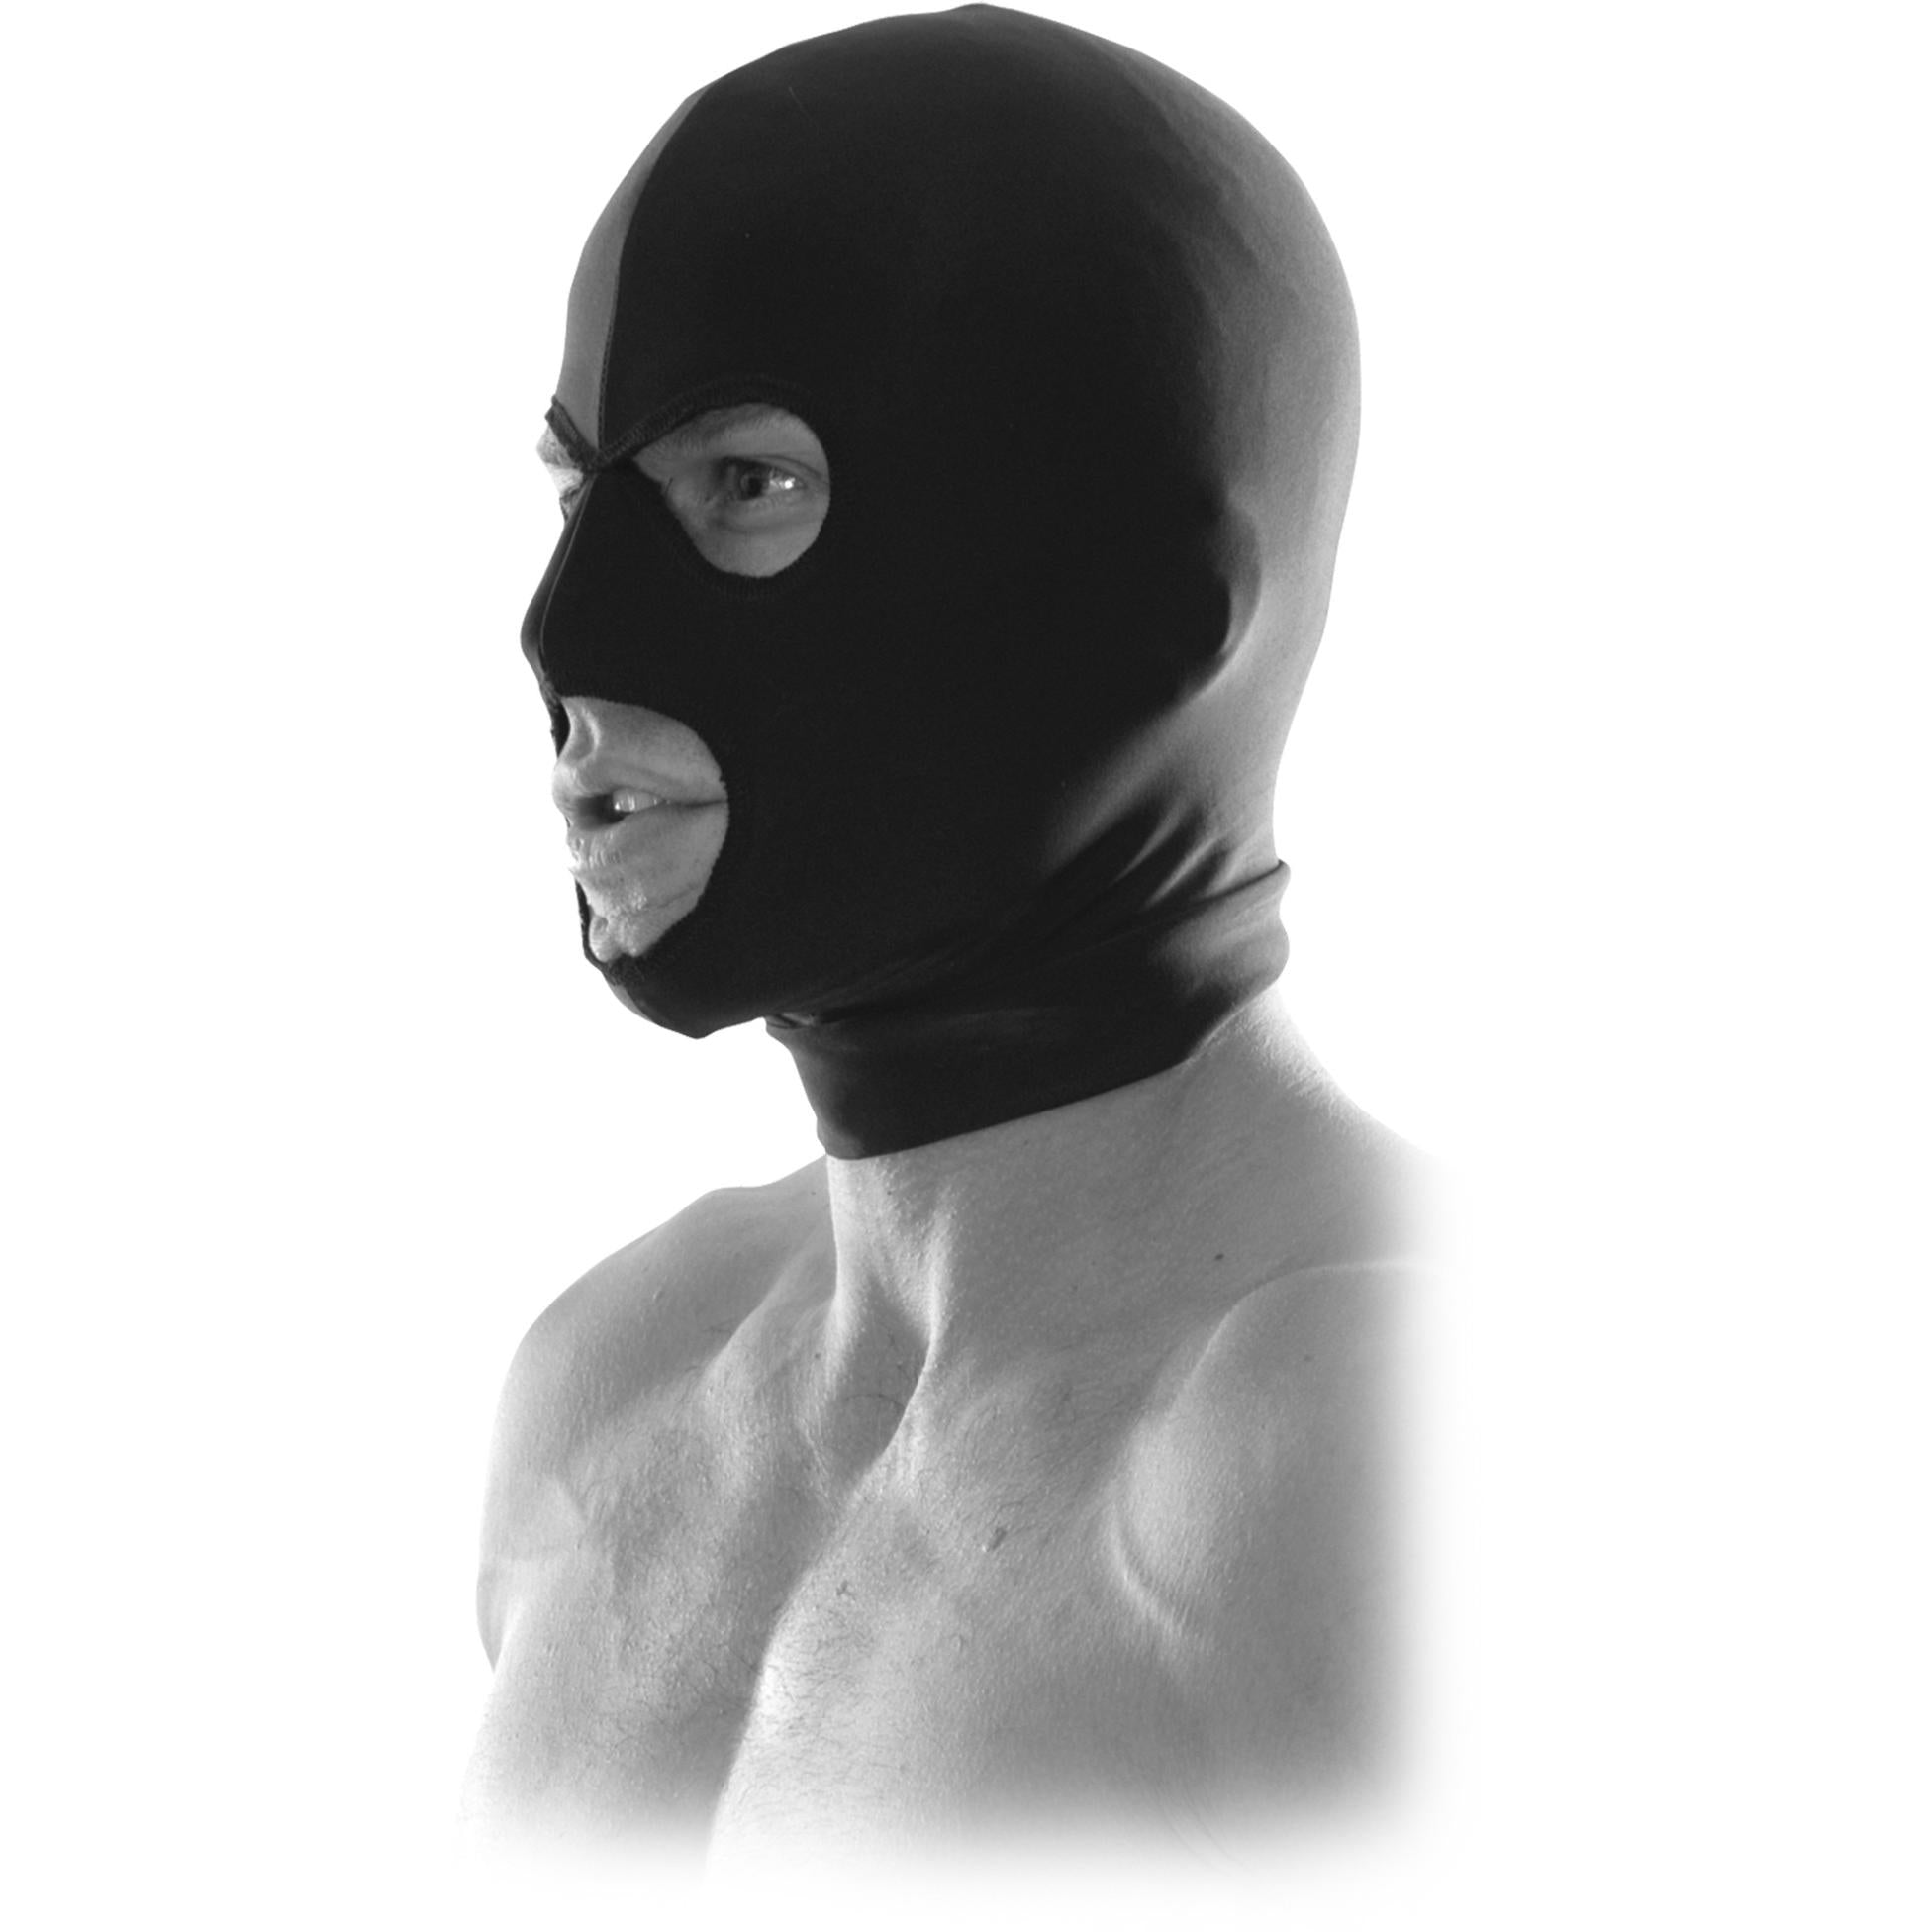 Fetish Fantasy Limited Edition Spandex Hood - Gay Men's Sex Toys - Adam's Toy Box